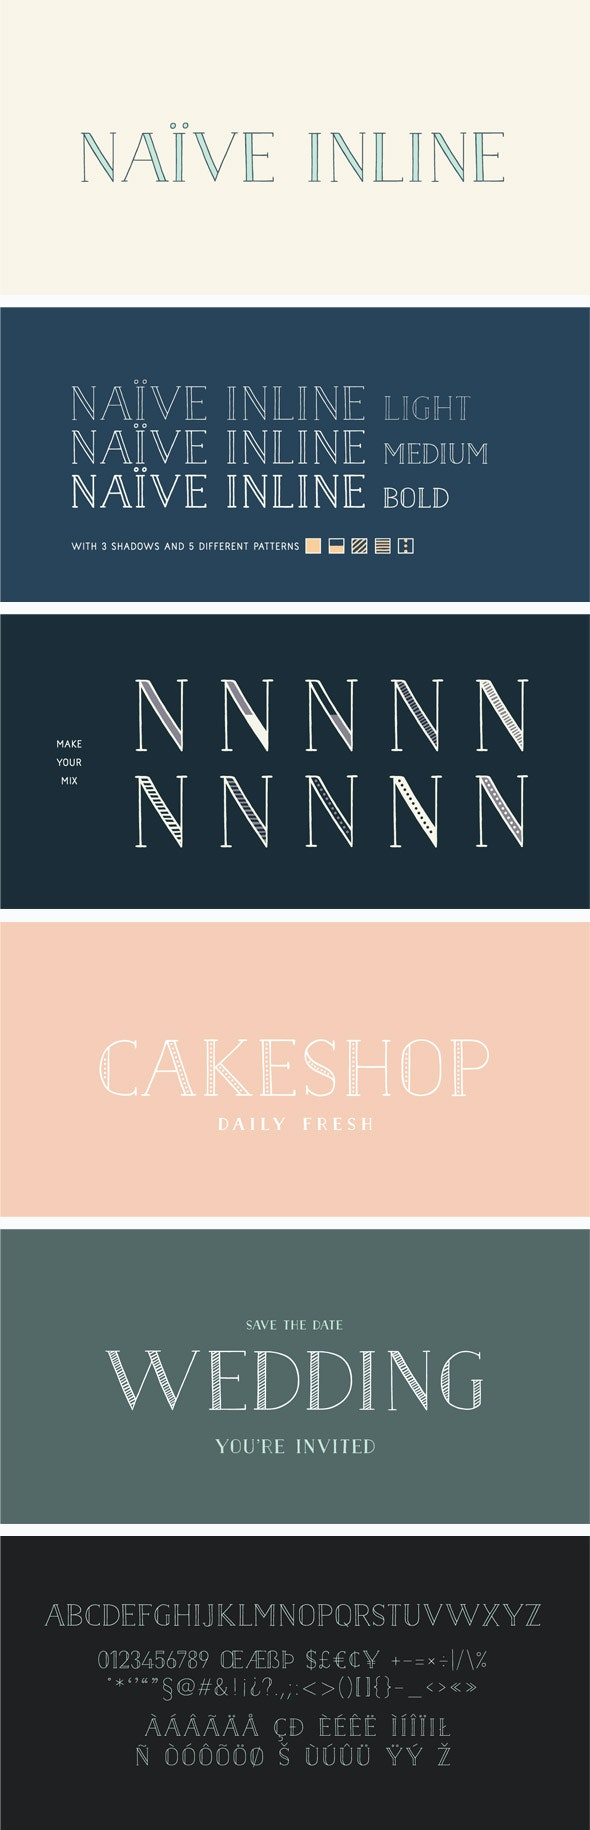 Naive Inline Font Pack - Handwriting Fonts